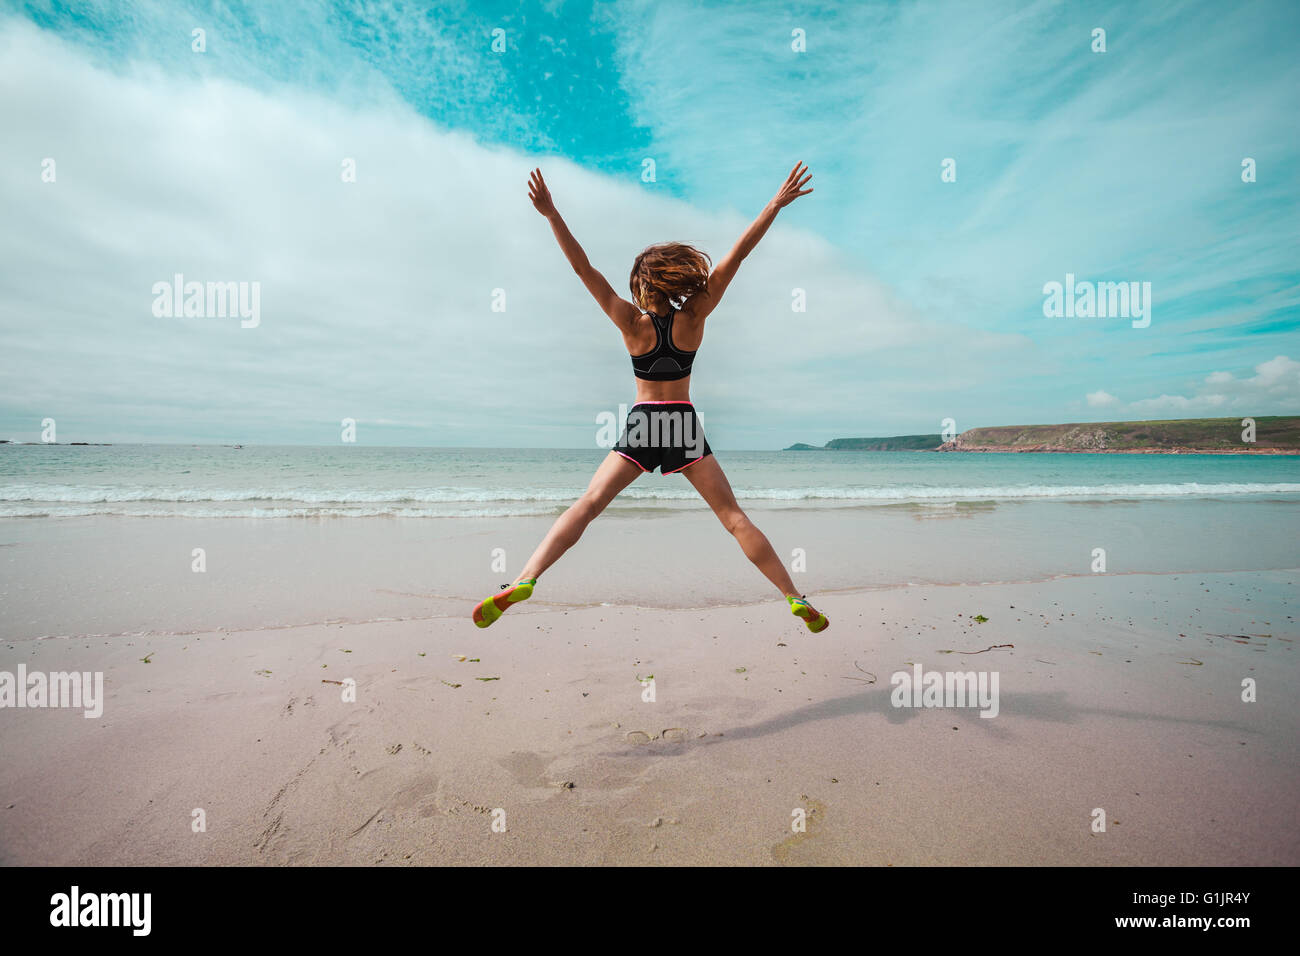 A young woman is doing star jumps on the beach by the sea - Stock Image